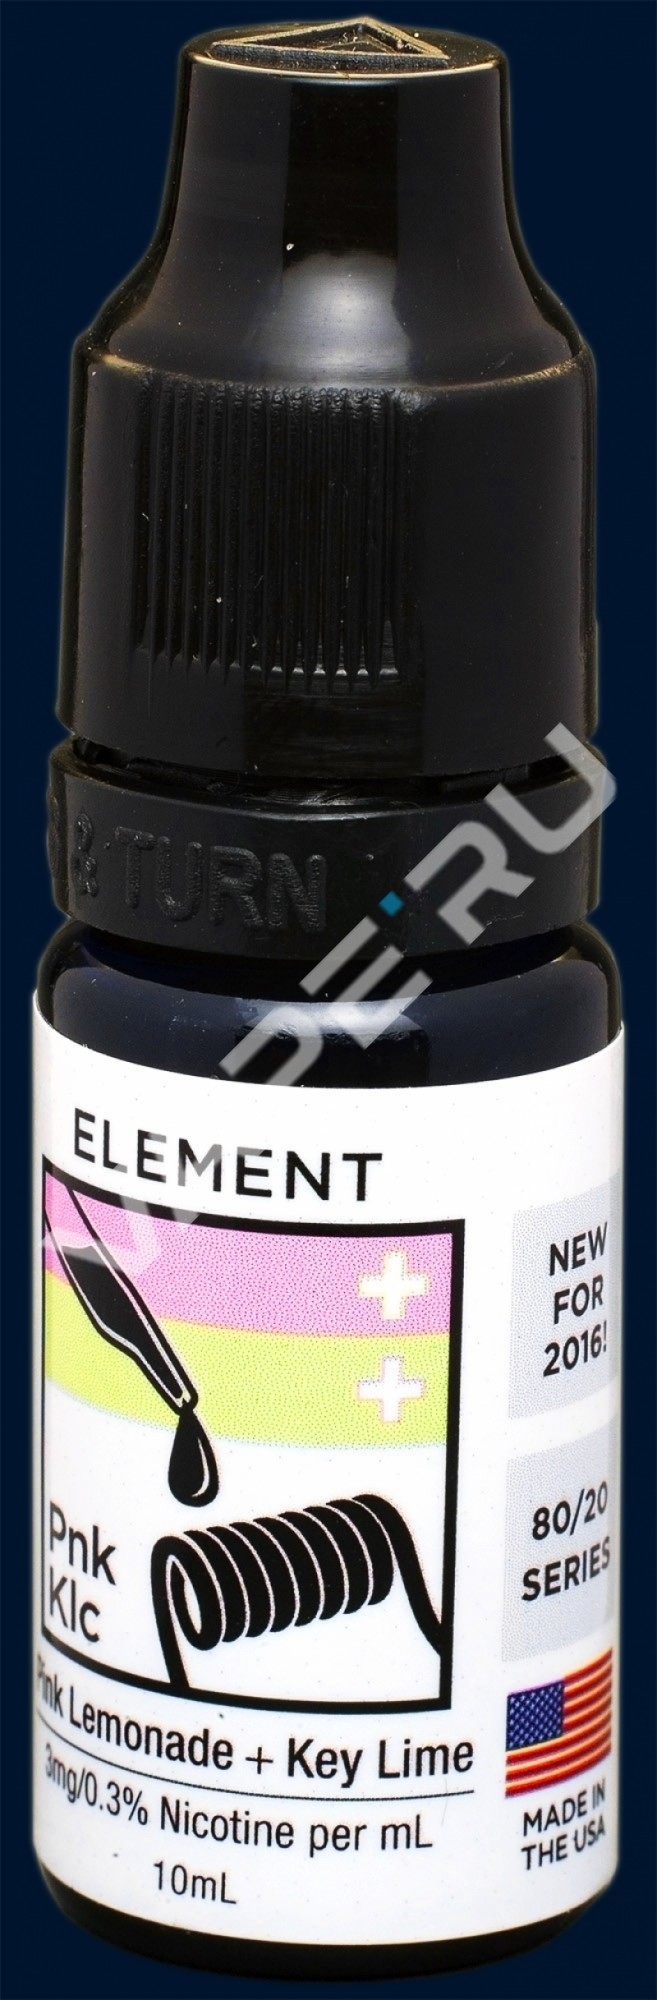 Element E- liquid,Emulsions, Dripper series, Pink Lemonade+Key Lime Cookie, 10ml